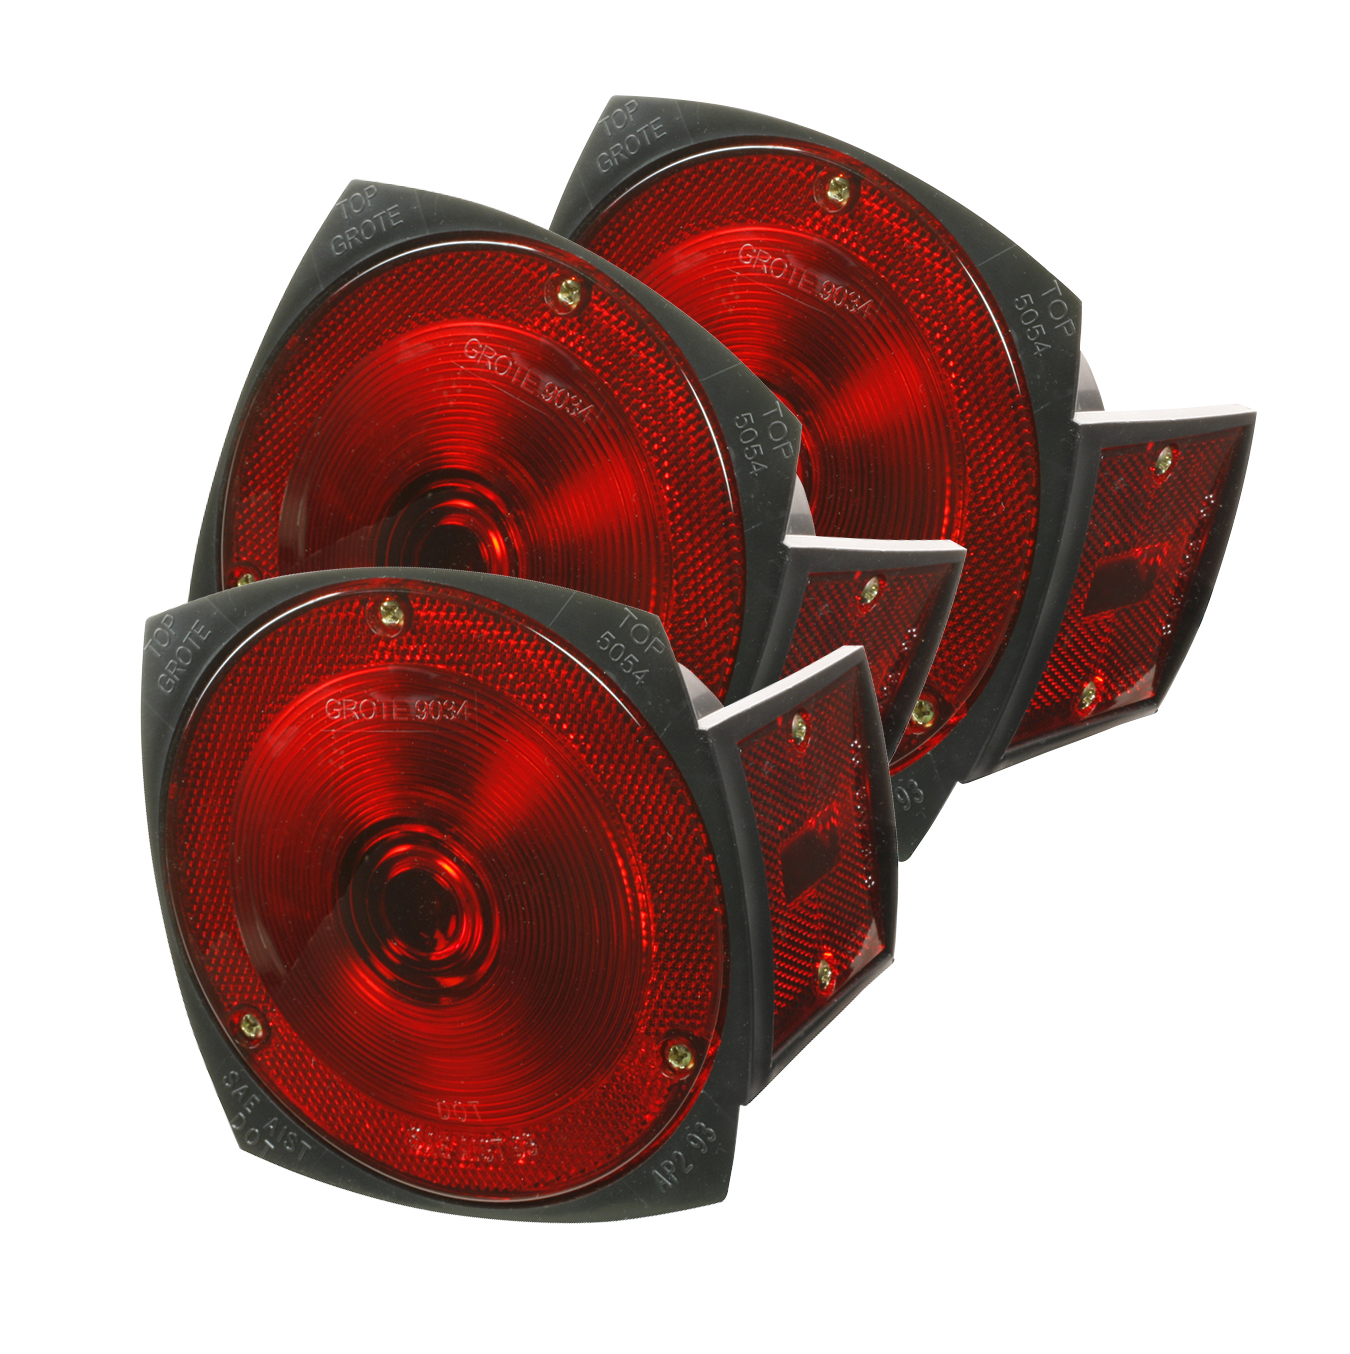 50542-3 – Trailer Lighting Kit with Side Marker Light, RH Replacement, Red, Bulk Pack